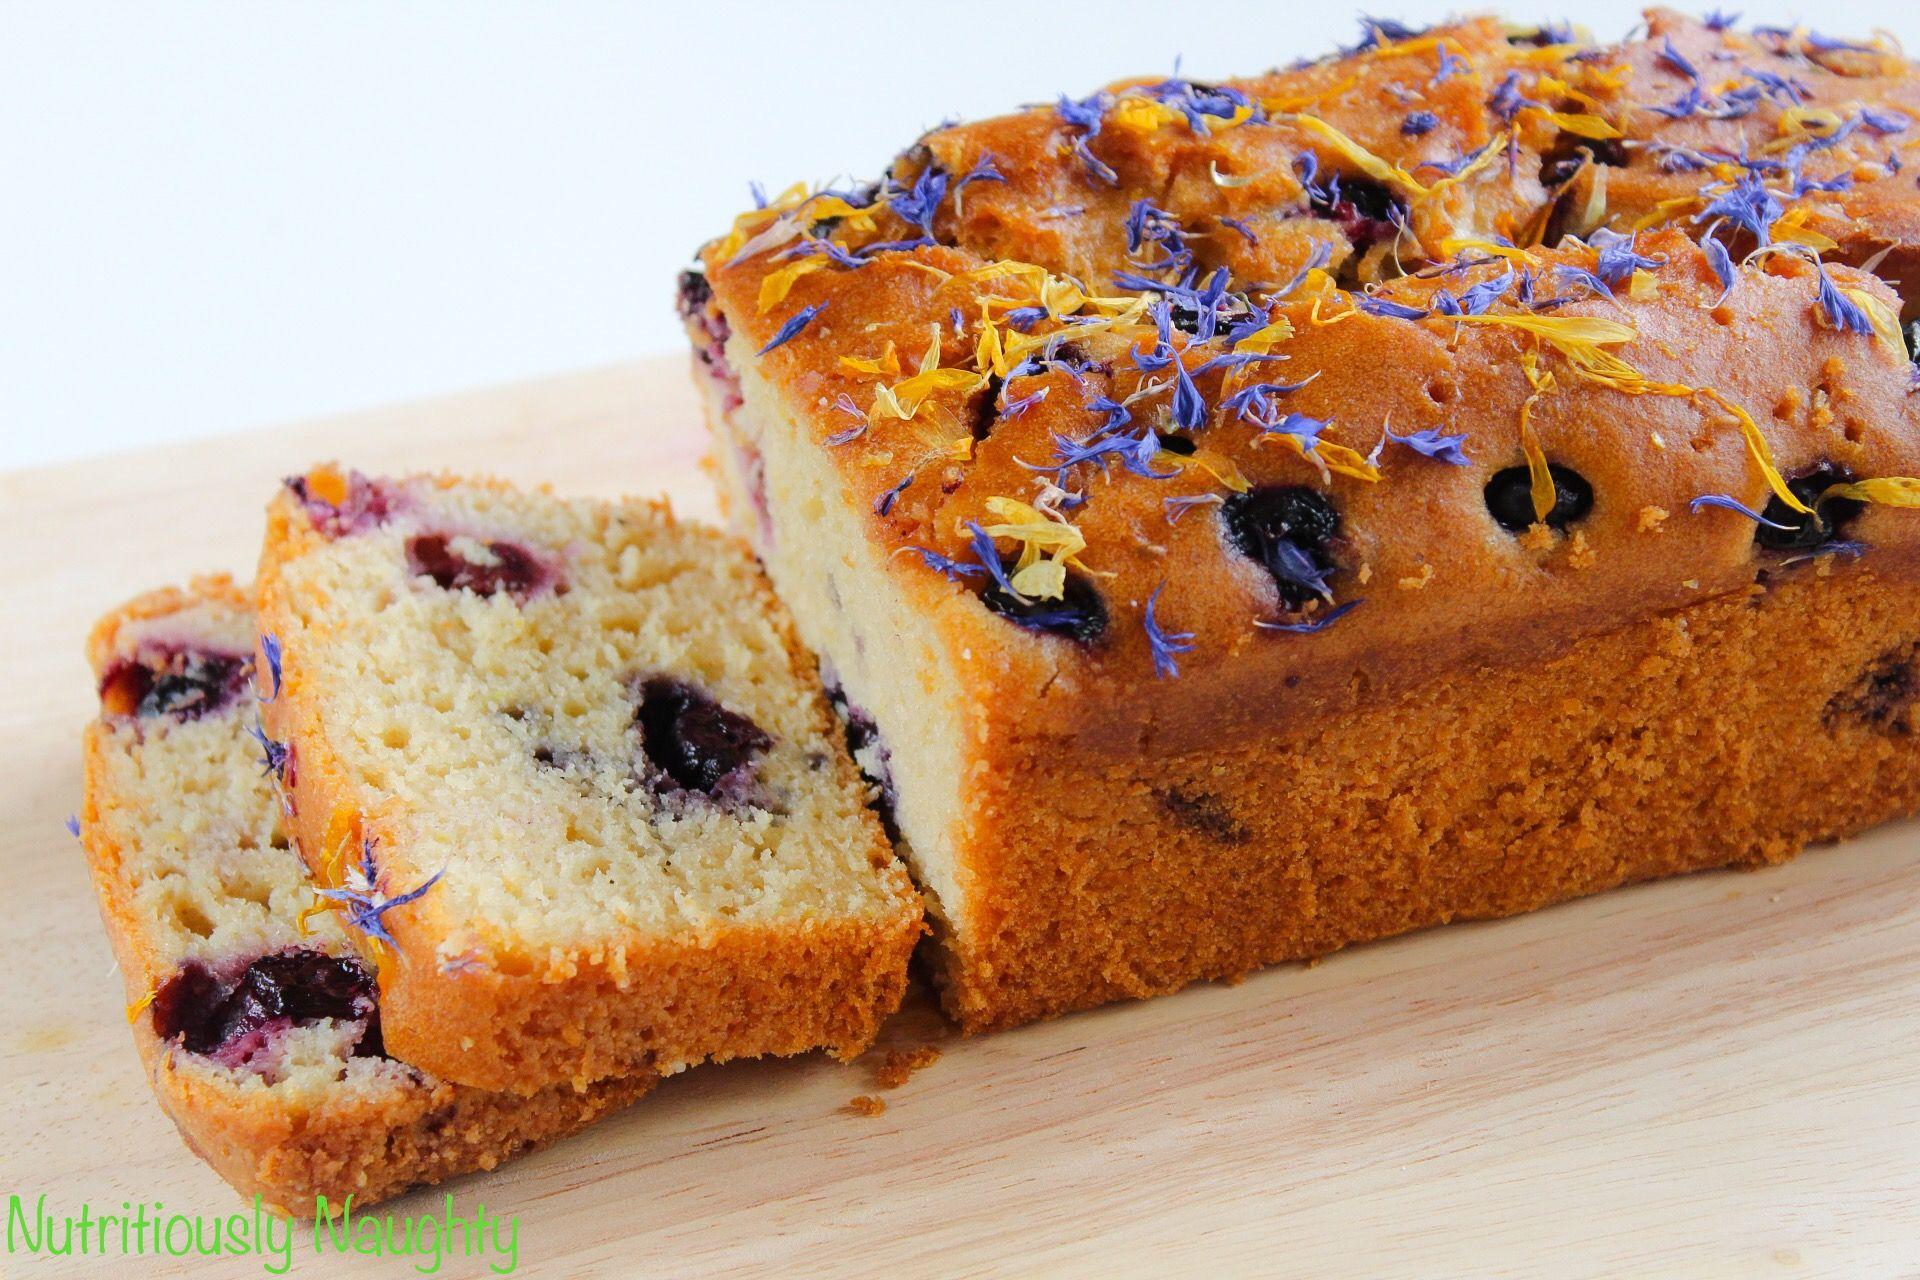 Lemon blueberry loaf cake with images diabetic